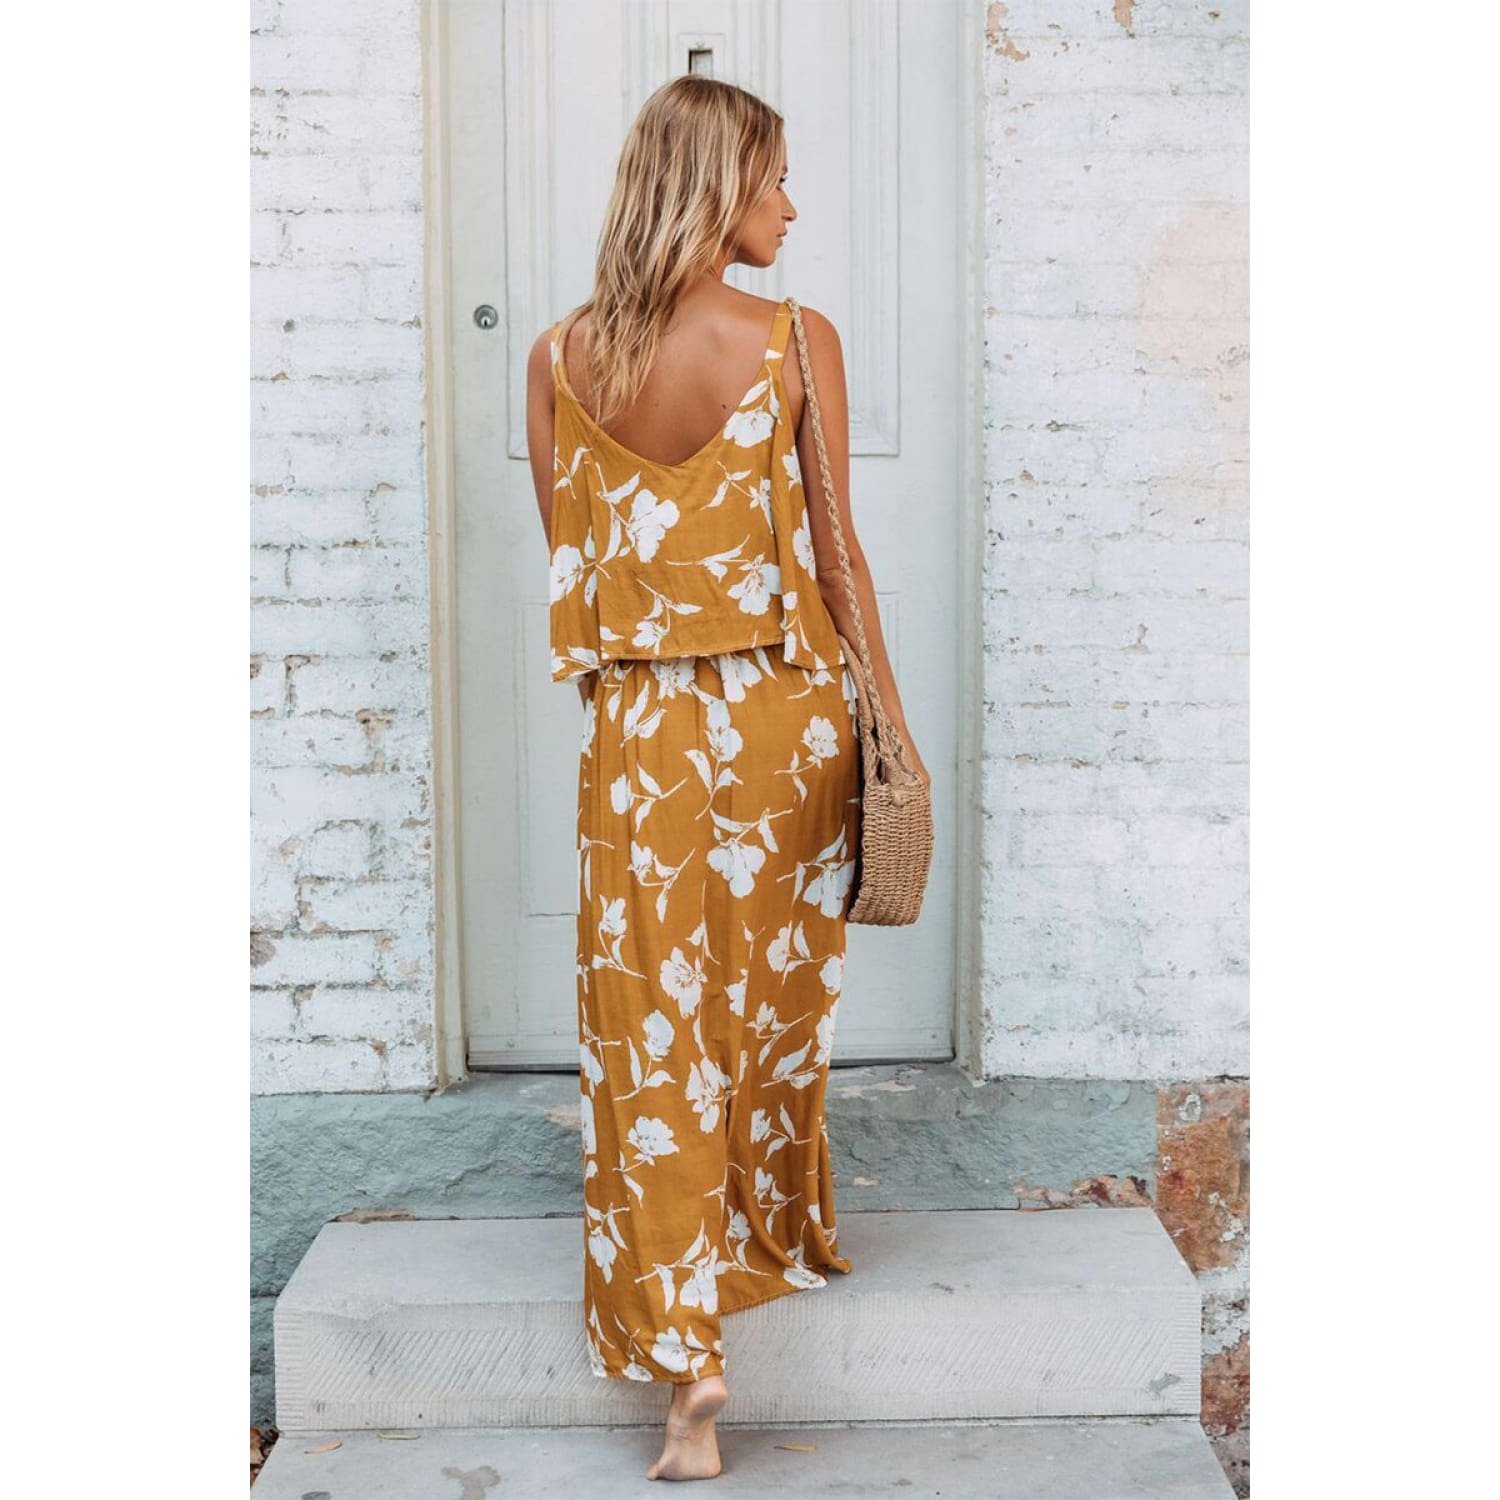 Chic Summer Boho Floral Maxi Dress in Mustard - Best YOU by HTS